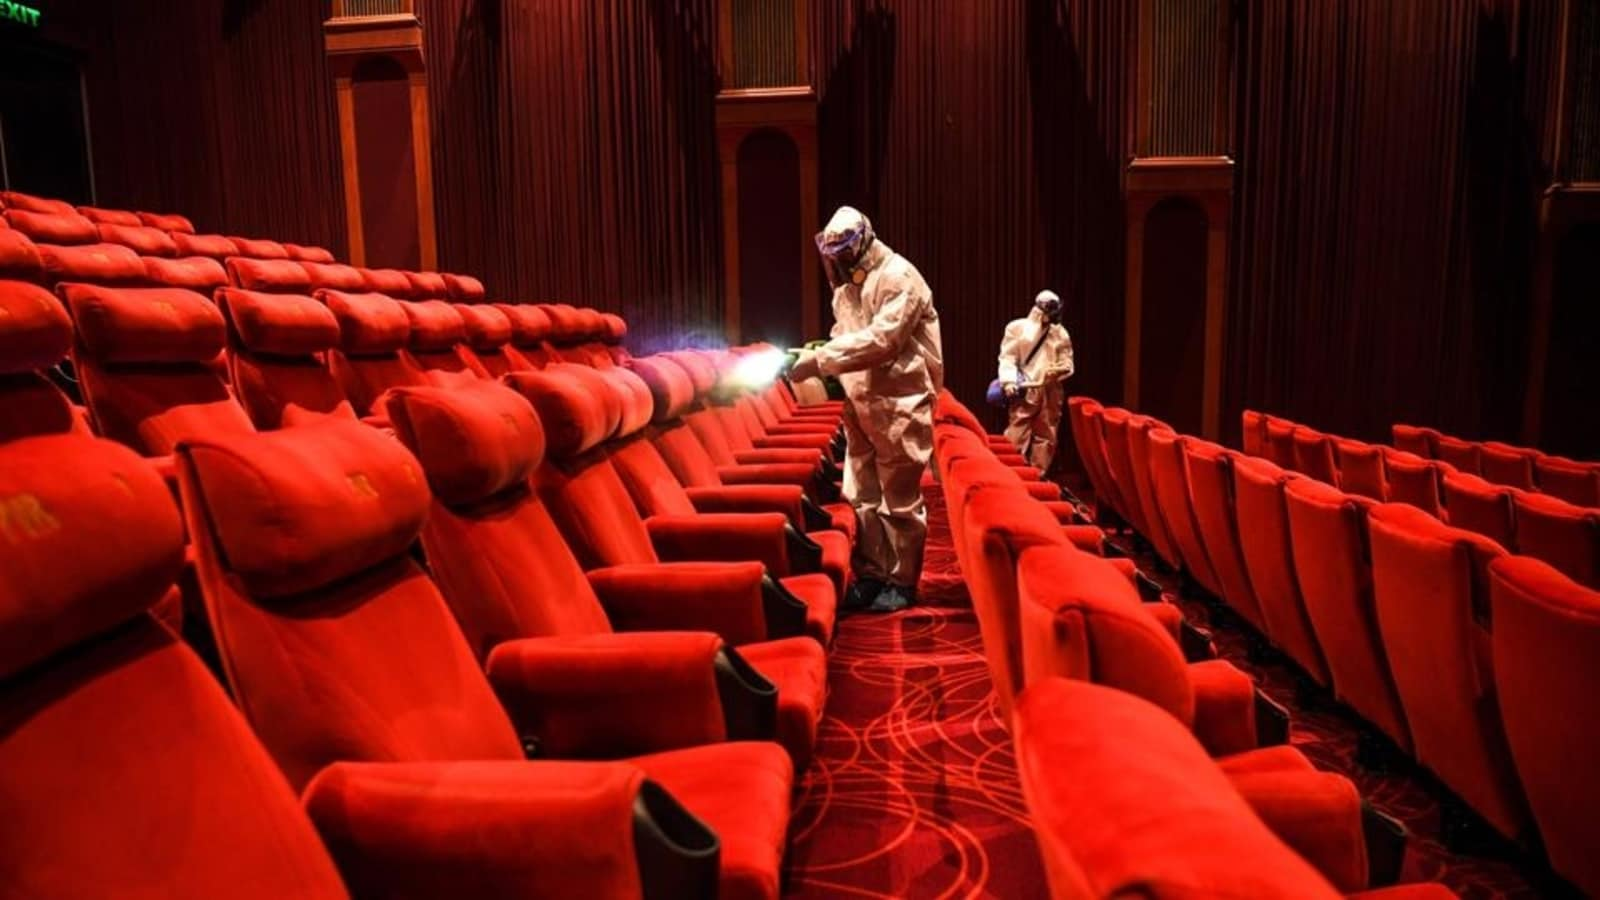 Maharashtra allows cinema halls, auditoriums to reopen from Oct 22. Details here